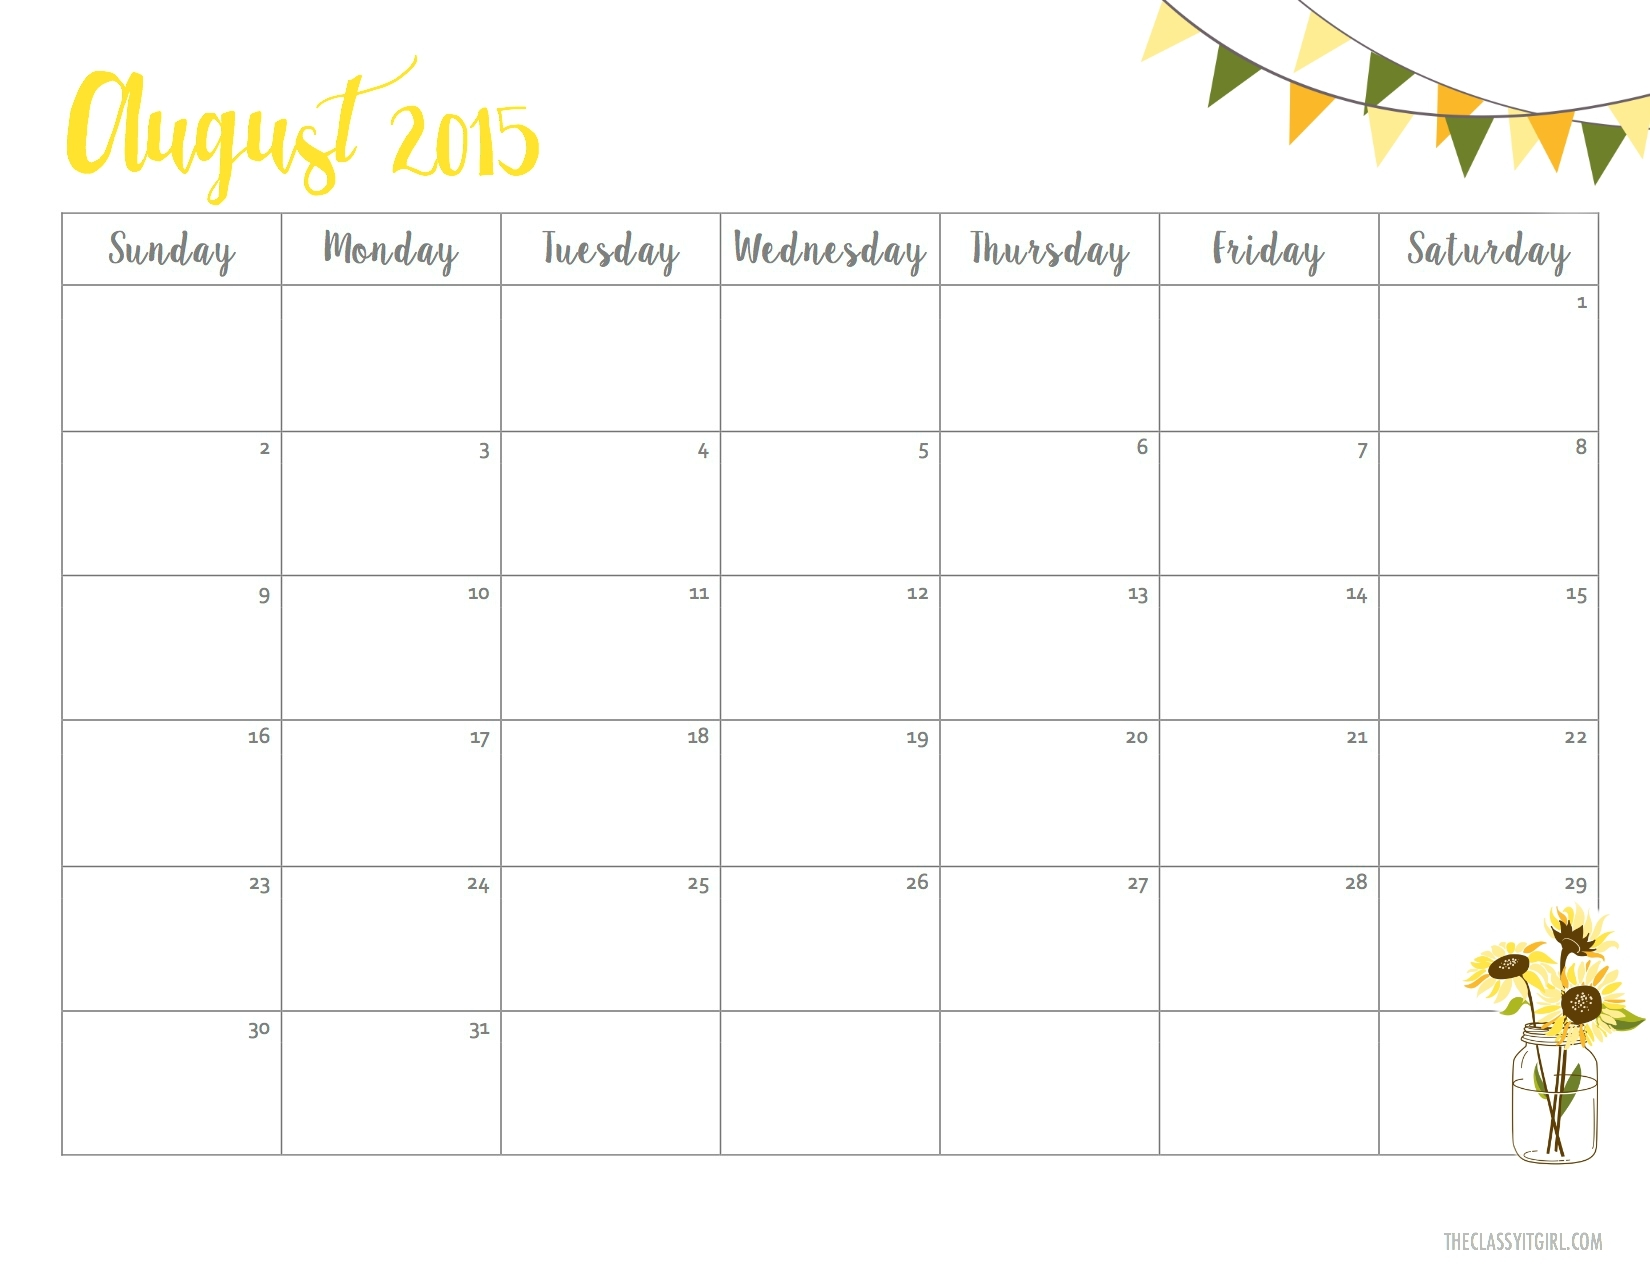 unique august 2018 calendar printable cute downloadtarget Calendar August 2018 Printable Free erdferdf